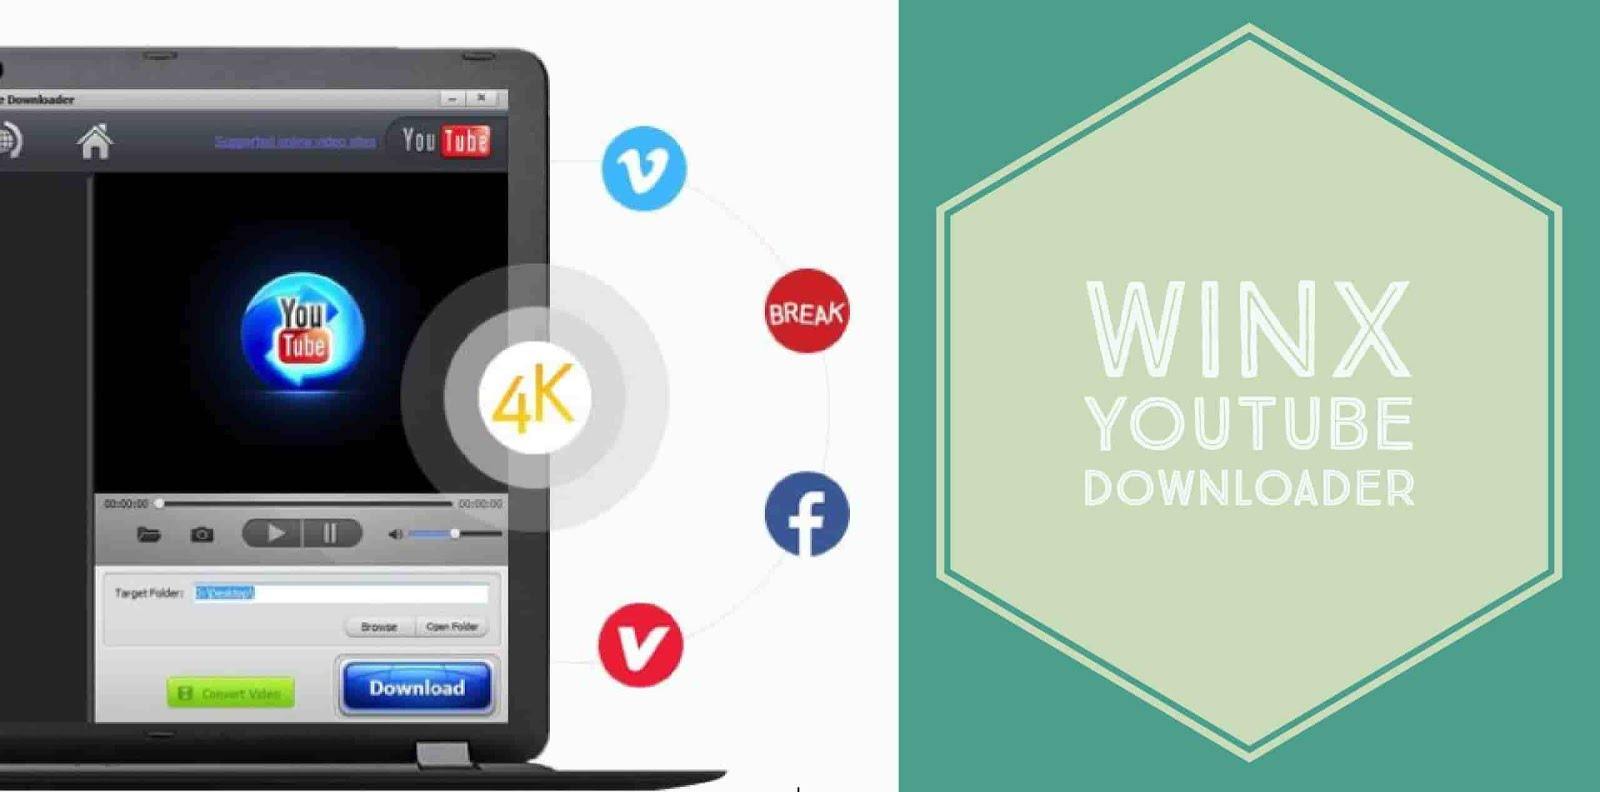 How To Download Youtube Video Using Iphone Image